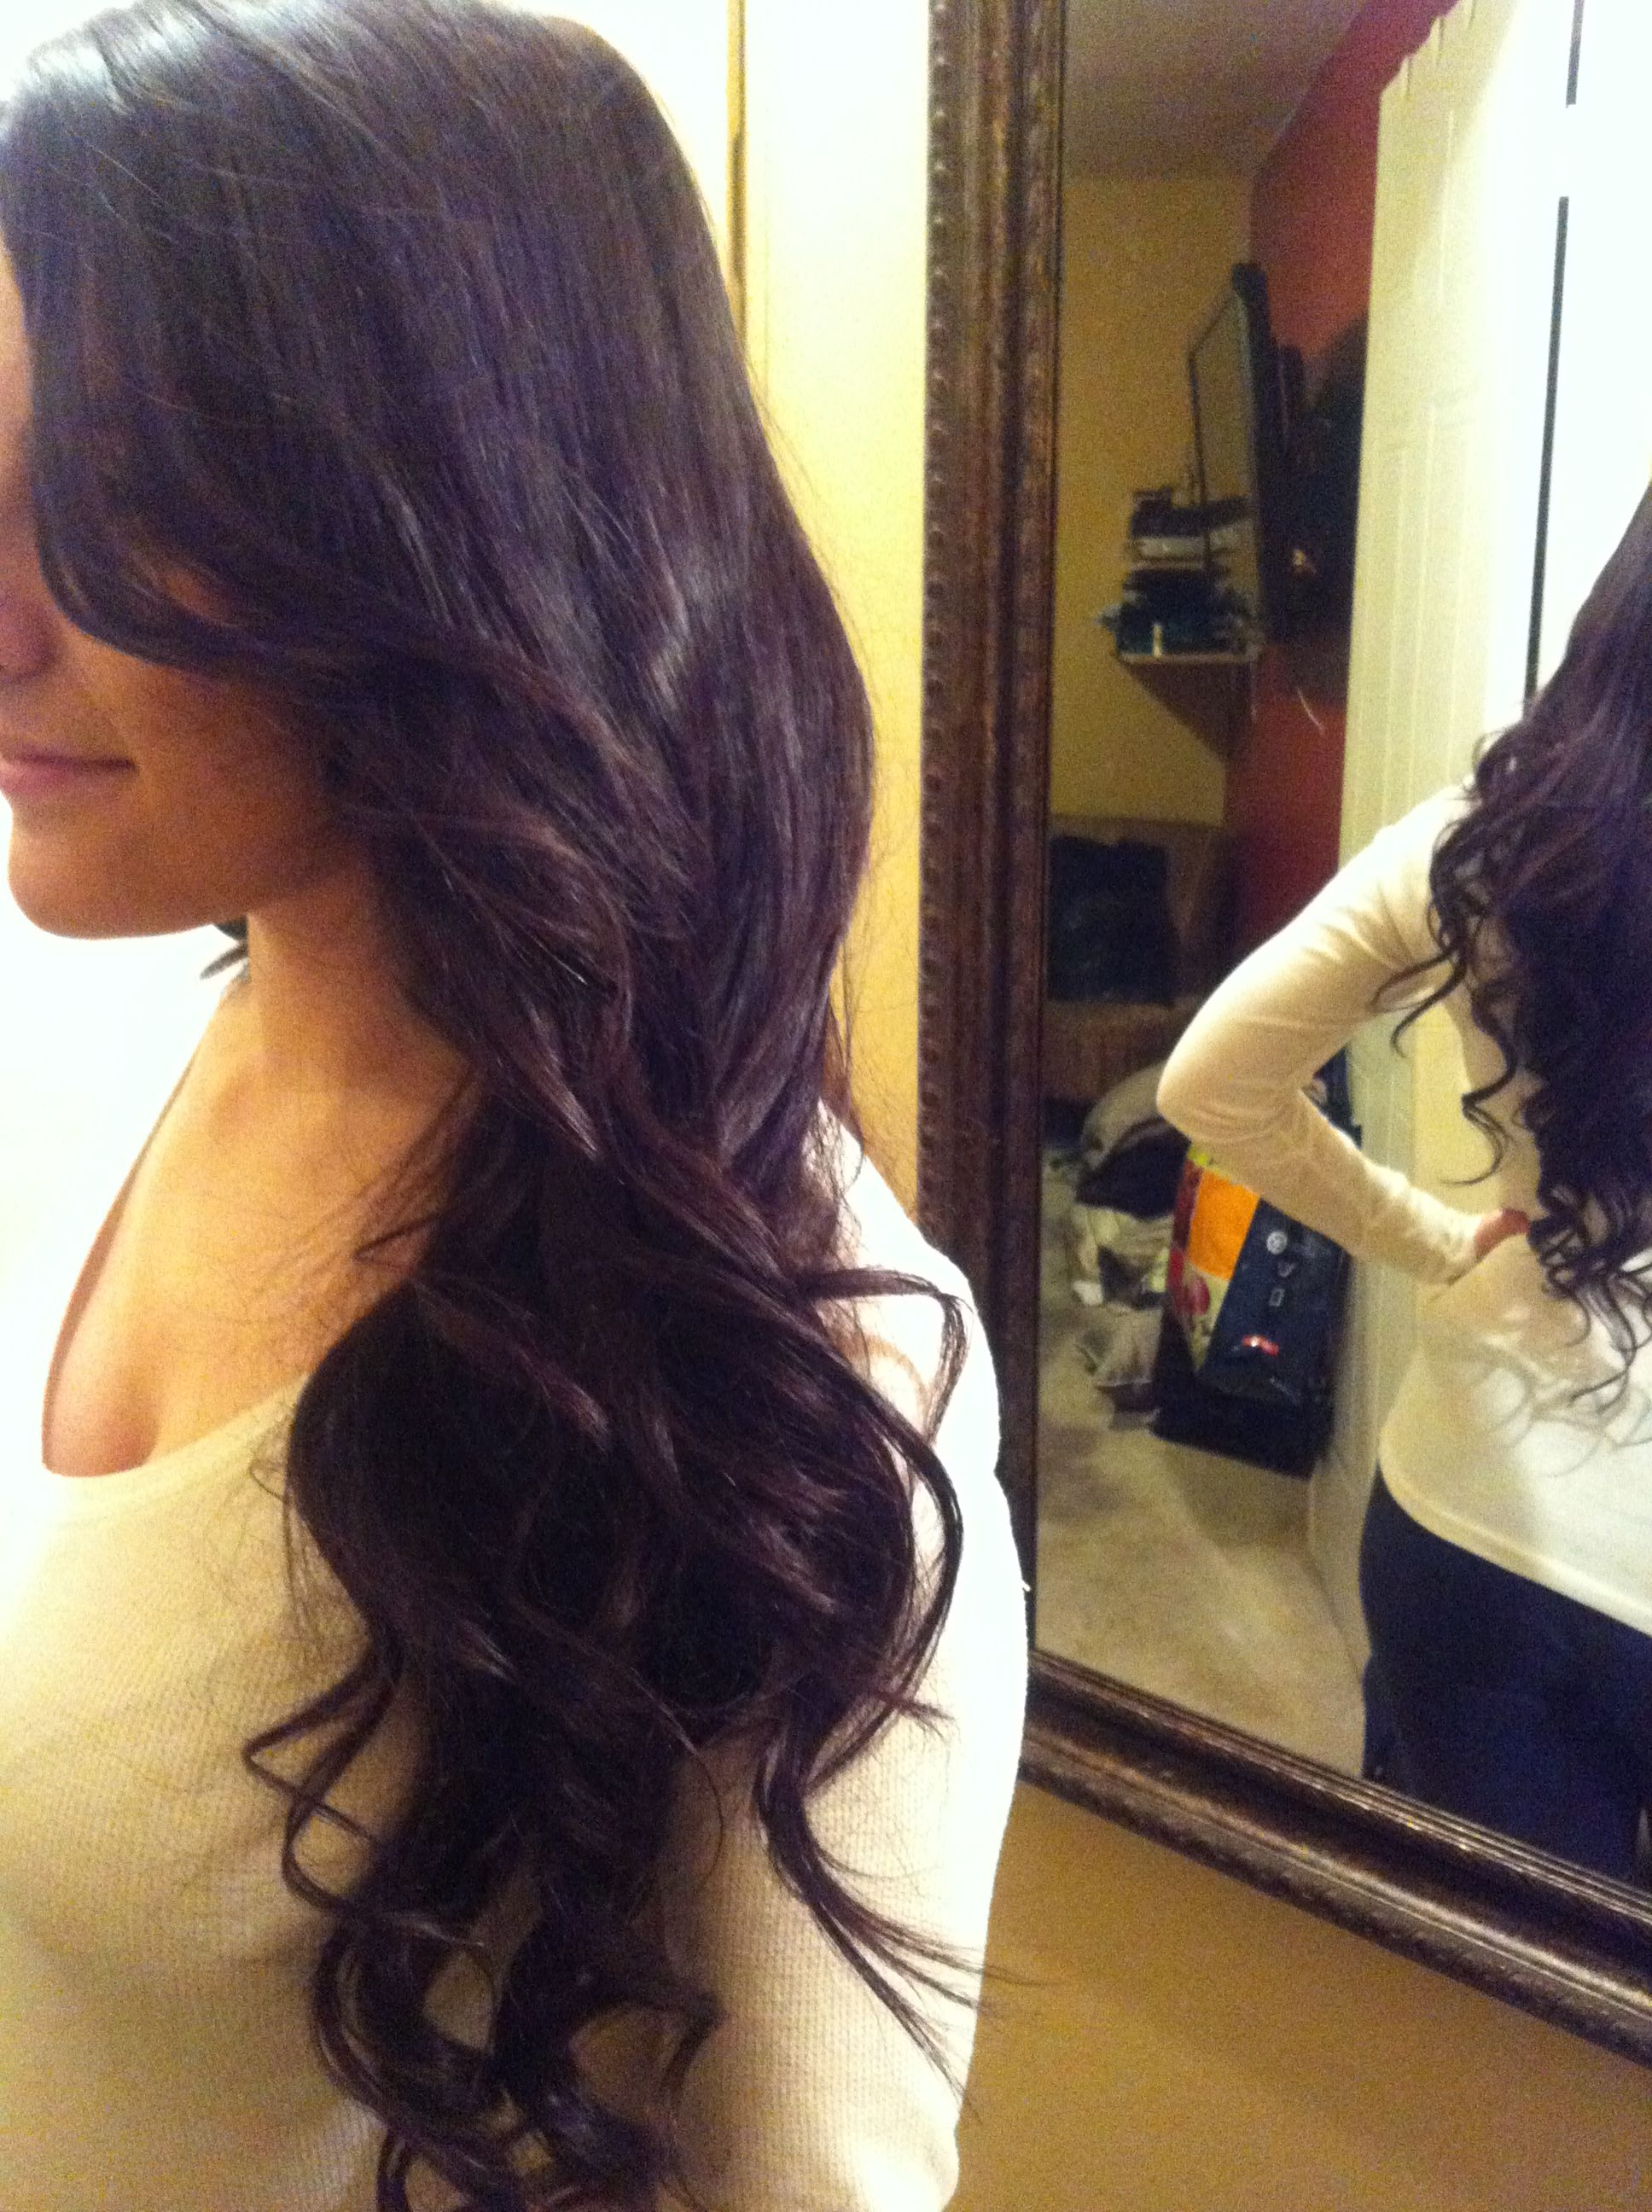 This girl helps you personally to pick the perfecthairmakeup for